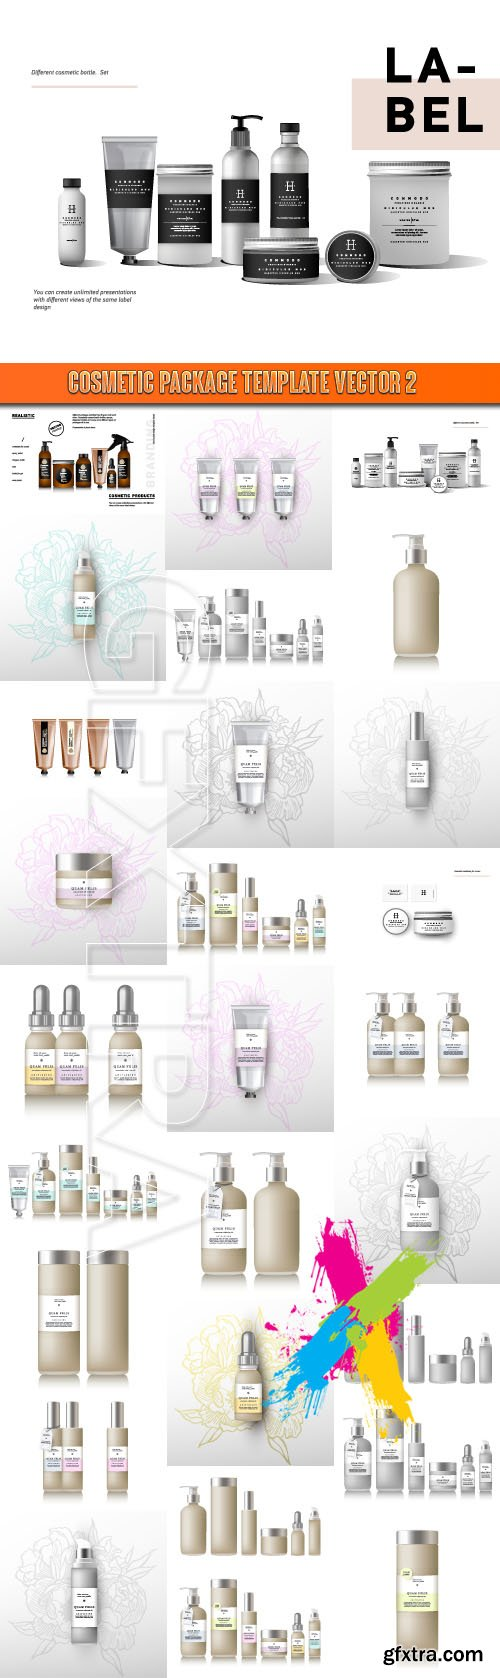 Cosmetic package template vector 2